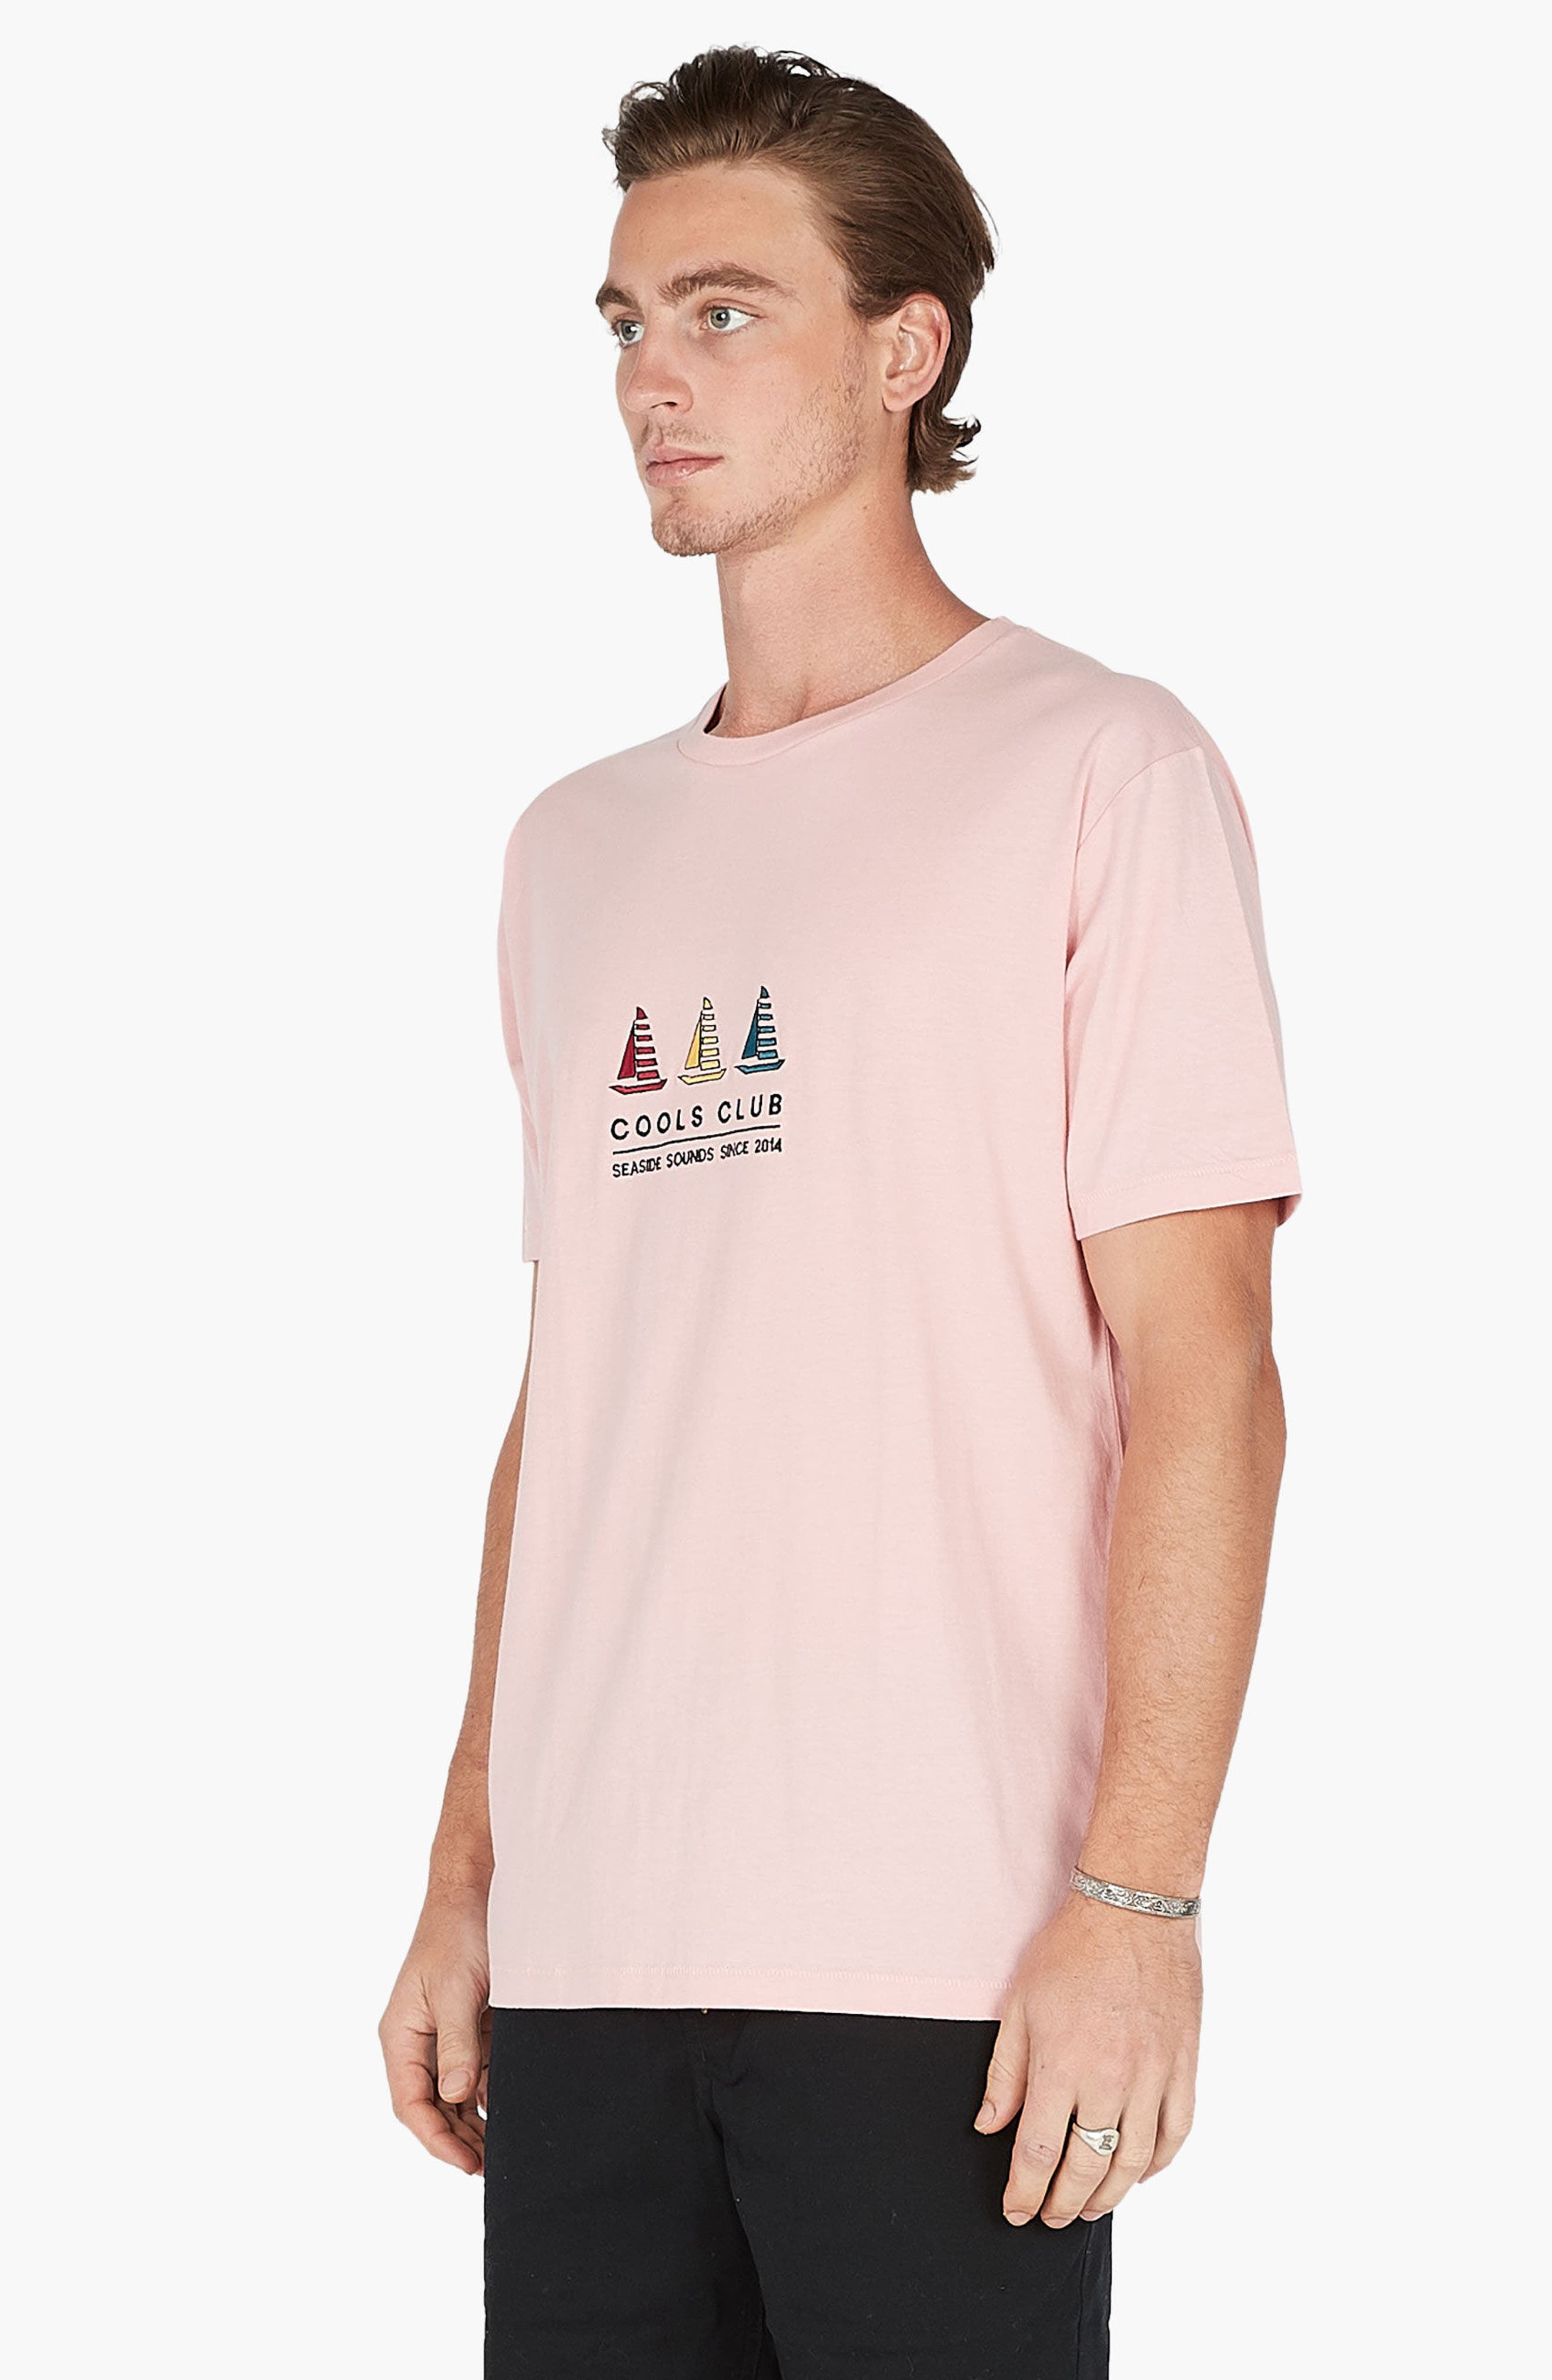 Embroidered Cools Club T-Shirt,                             Alternate thumbnail 4, color,                             680